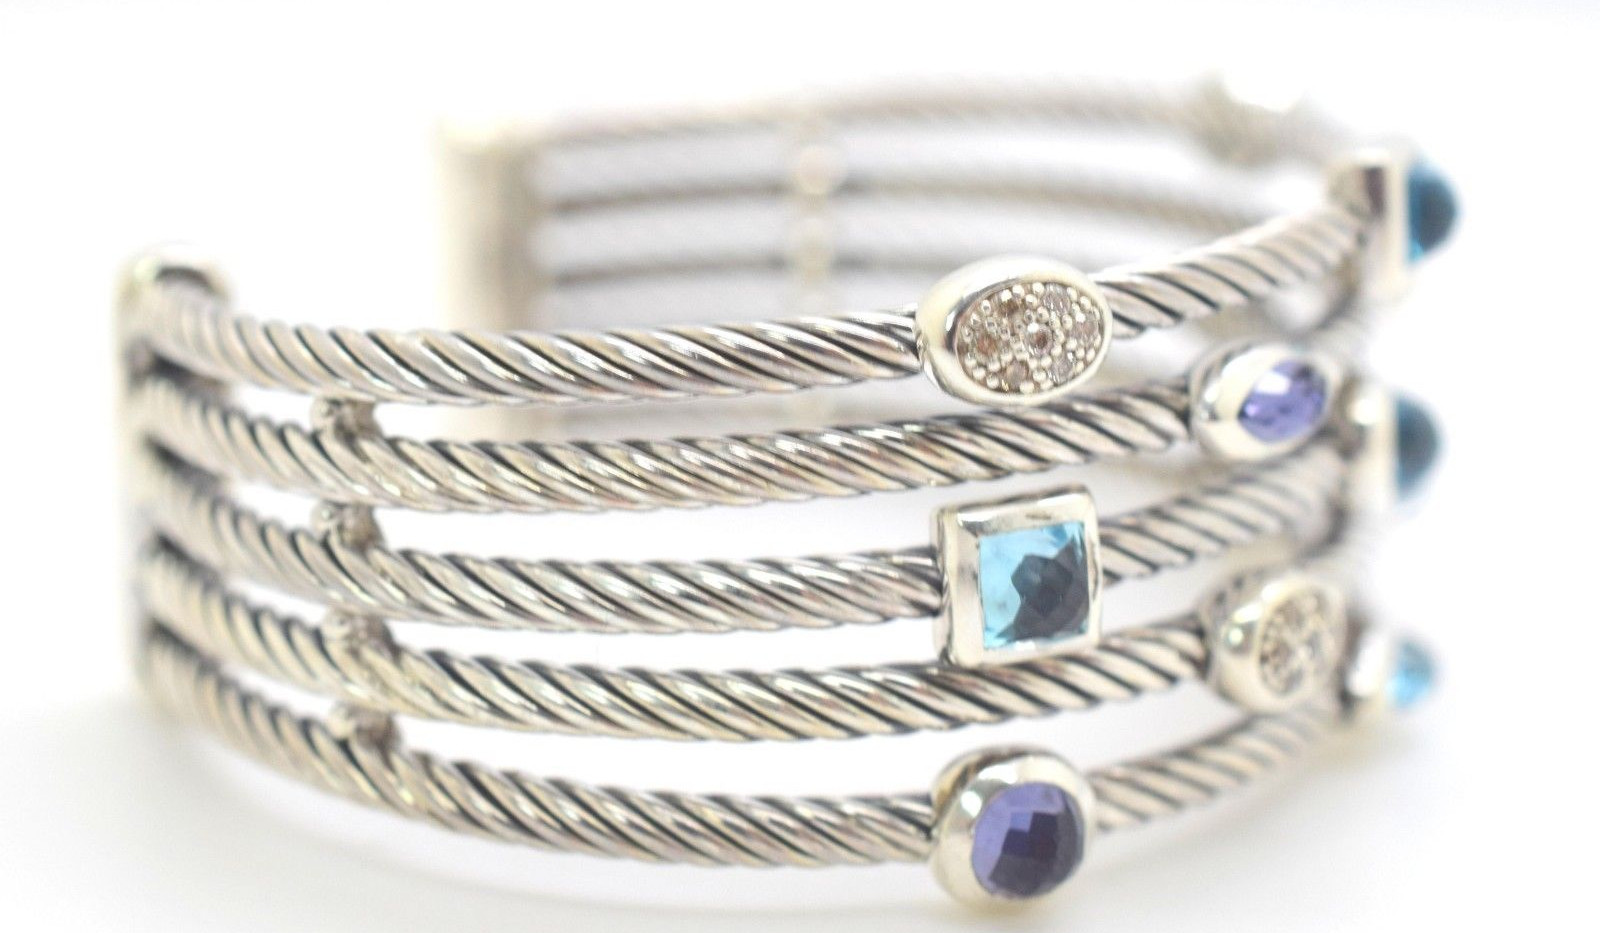 David Yurman Confetti Cuff Diamond,Topaz, Amethyst .925 Sterling Silver 5 Row